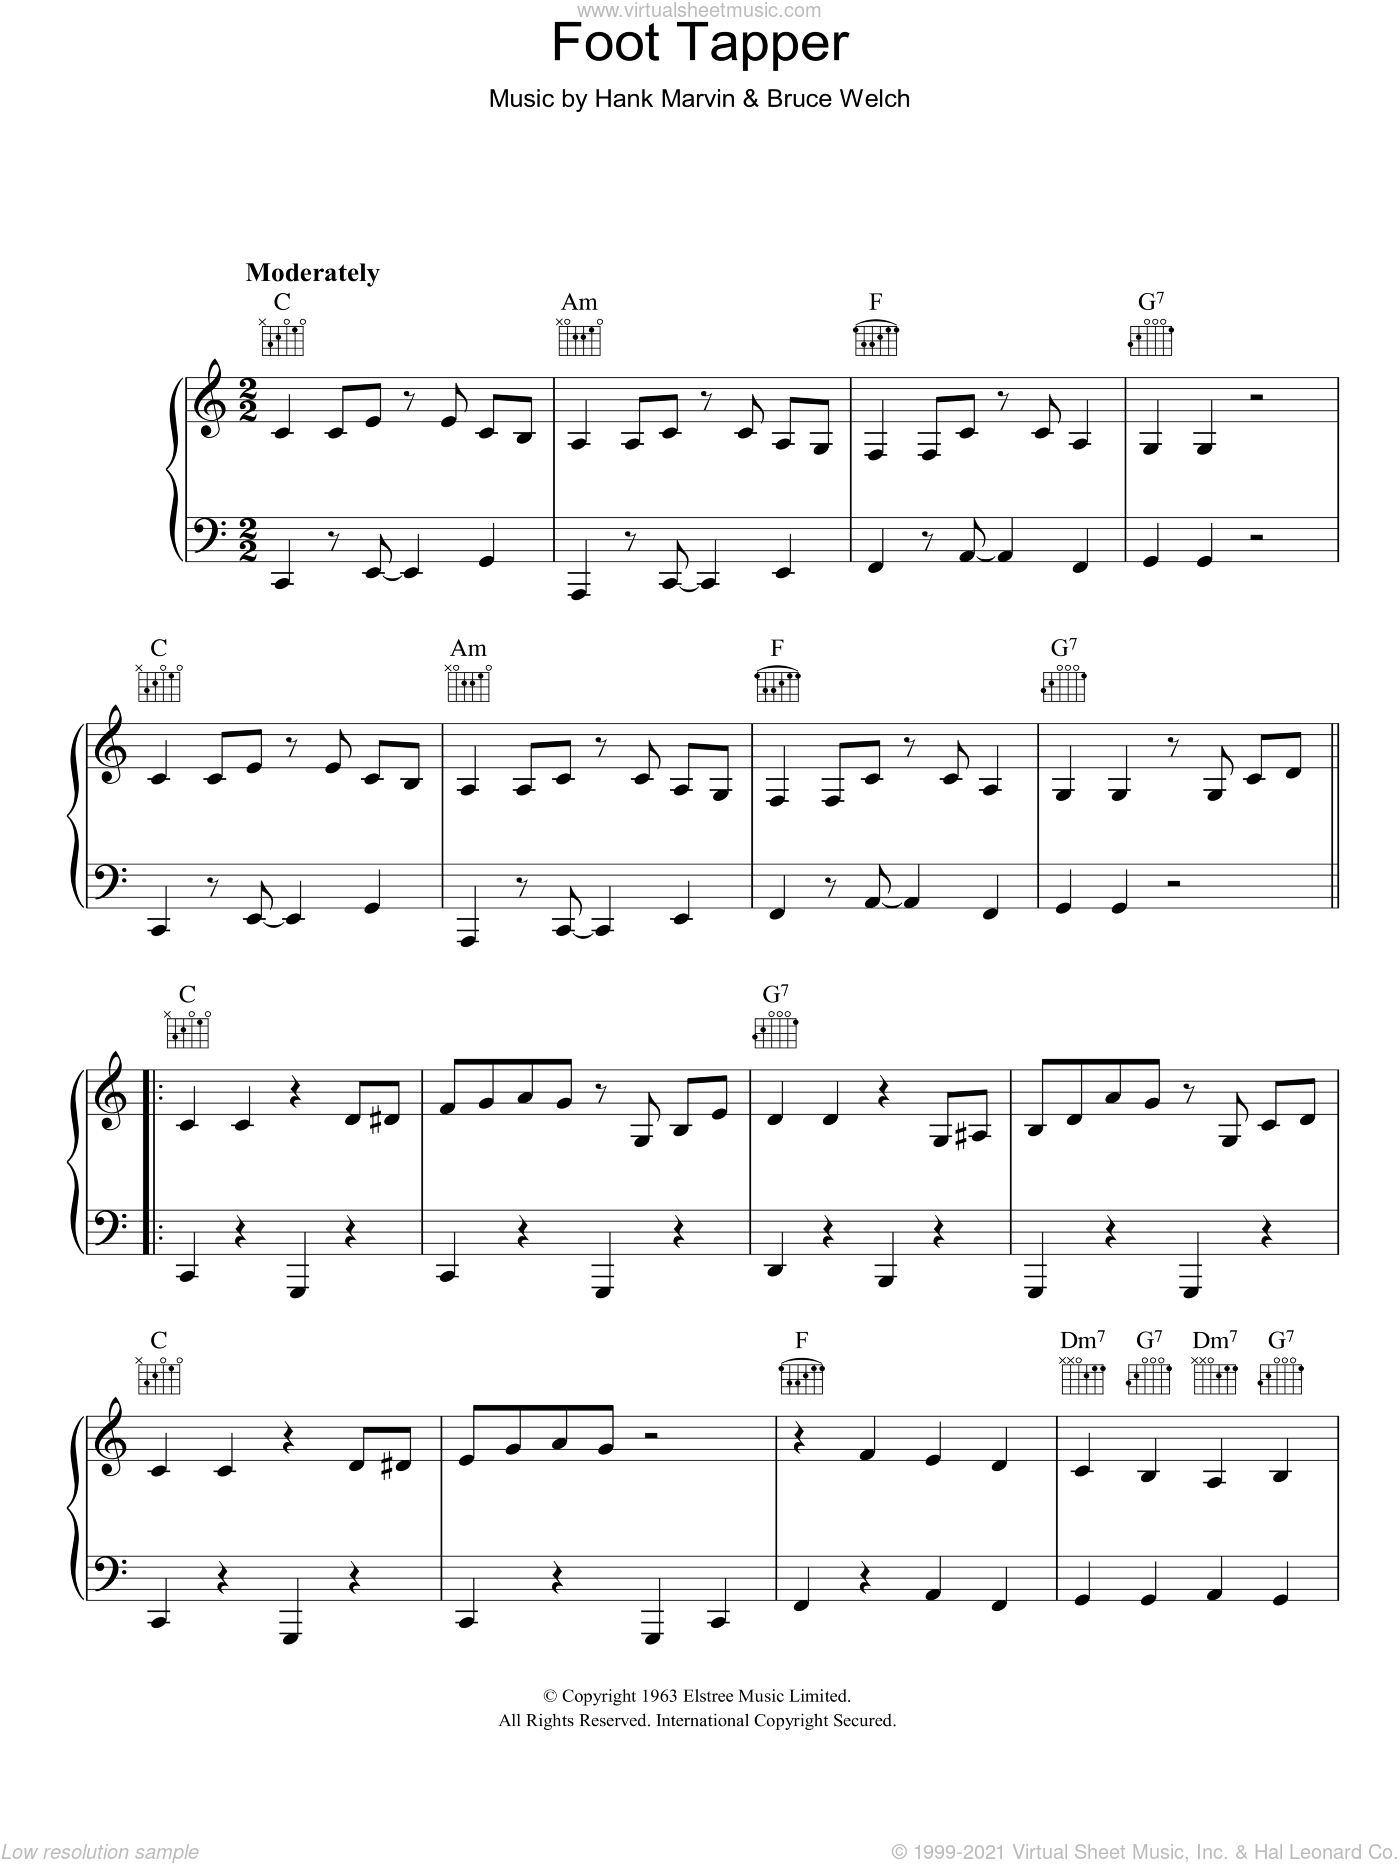 Foot Tapper sheet music for voice, piano or guitar by Bruce Welch